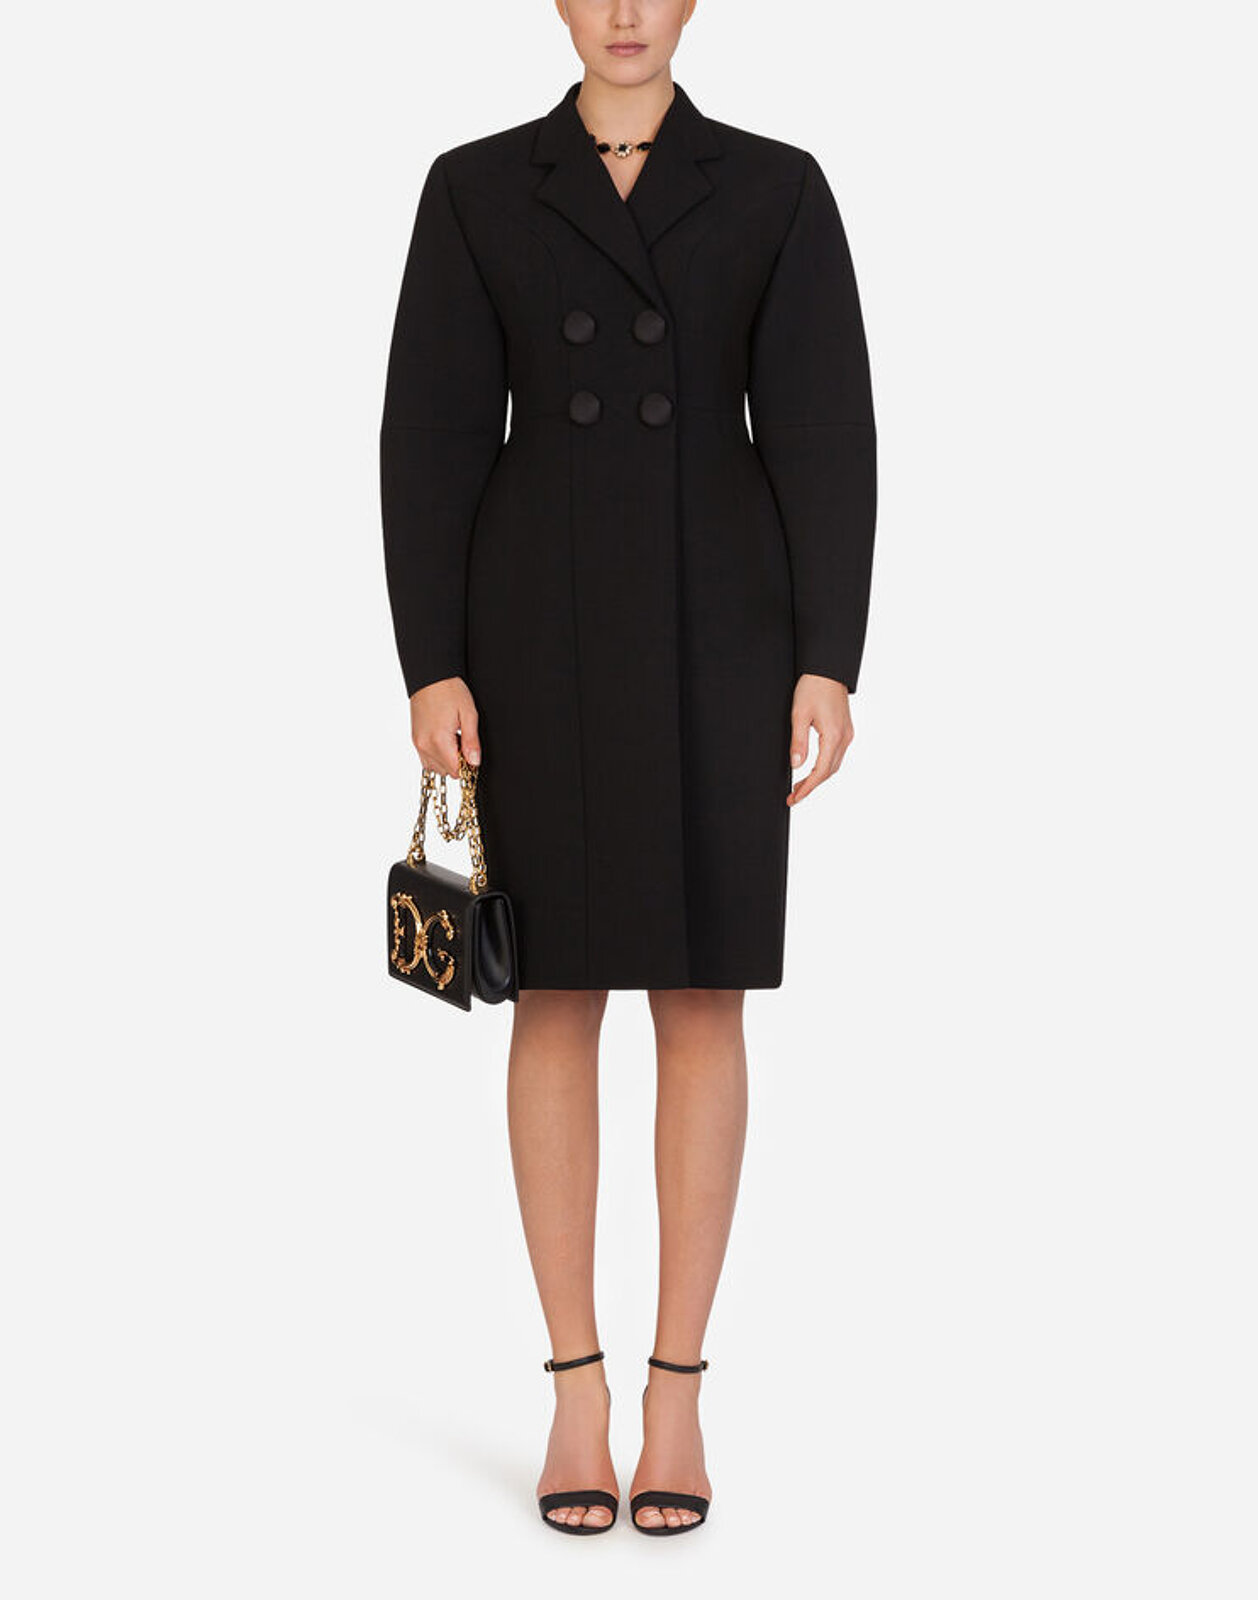 Double Breasted Wool Coat - Dolce & Gabbana